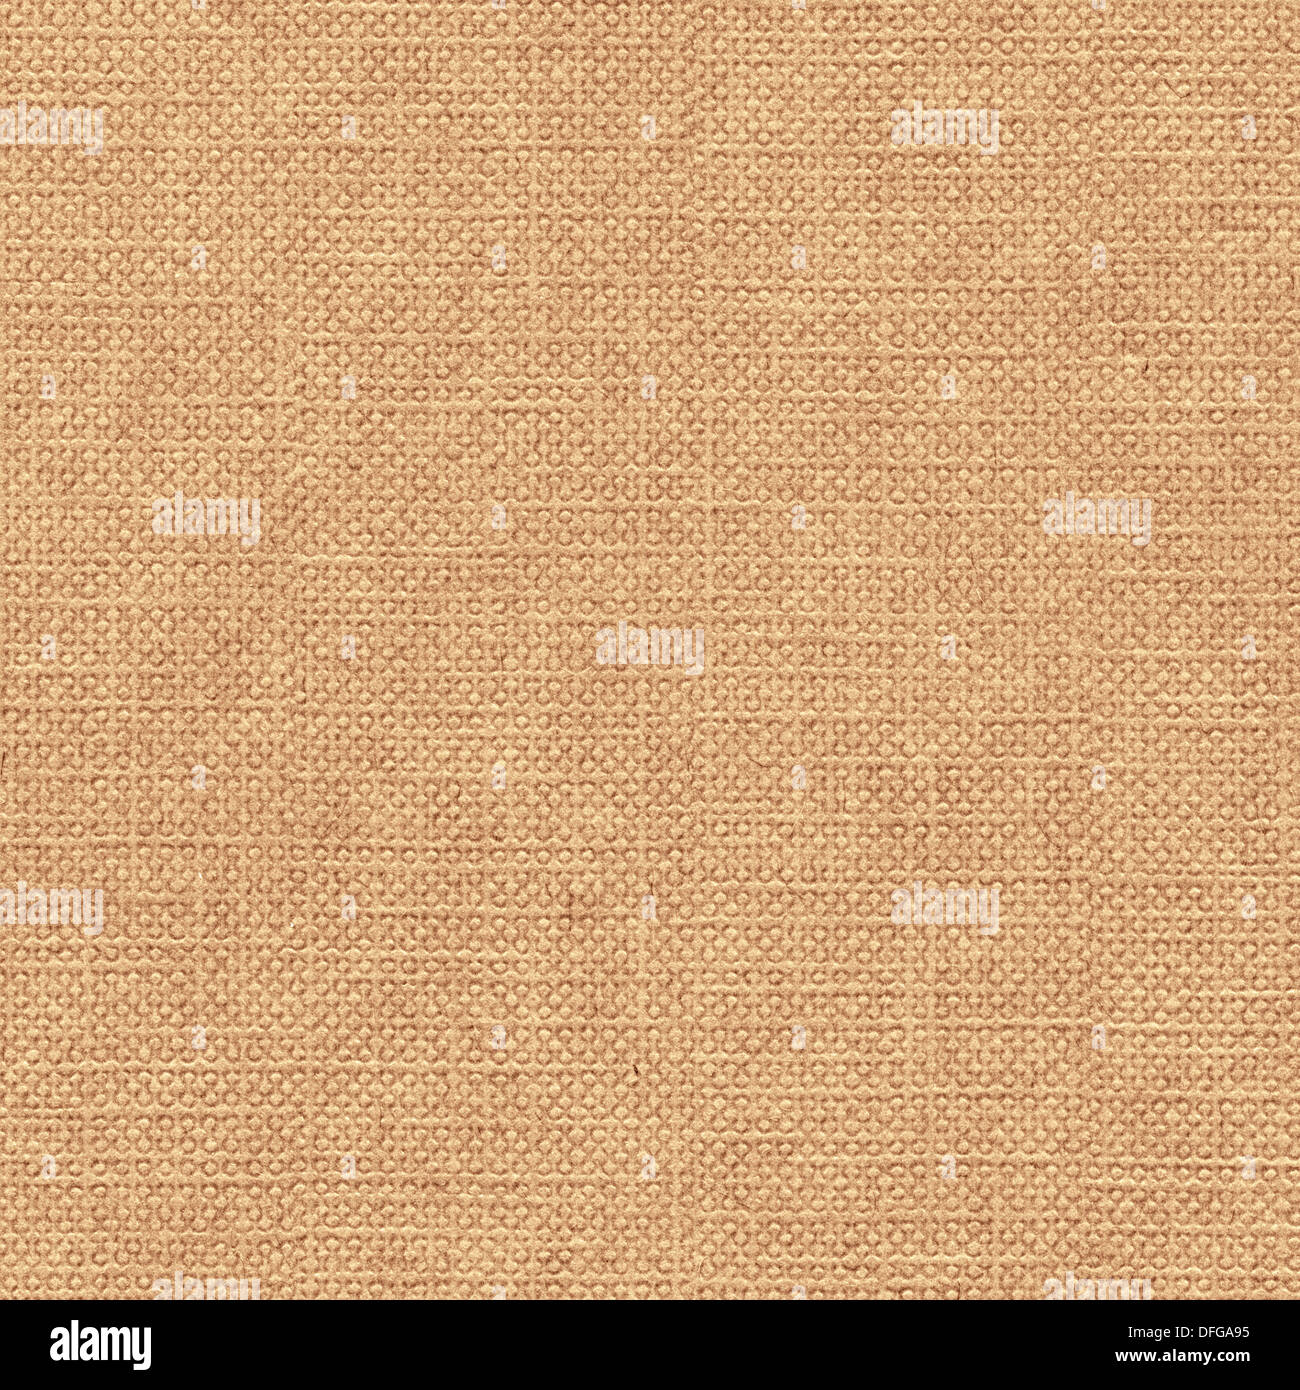 Book Cover Background : Cardboard texture book cover background stock photo